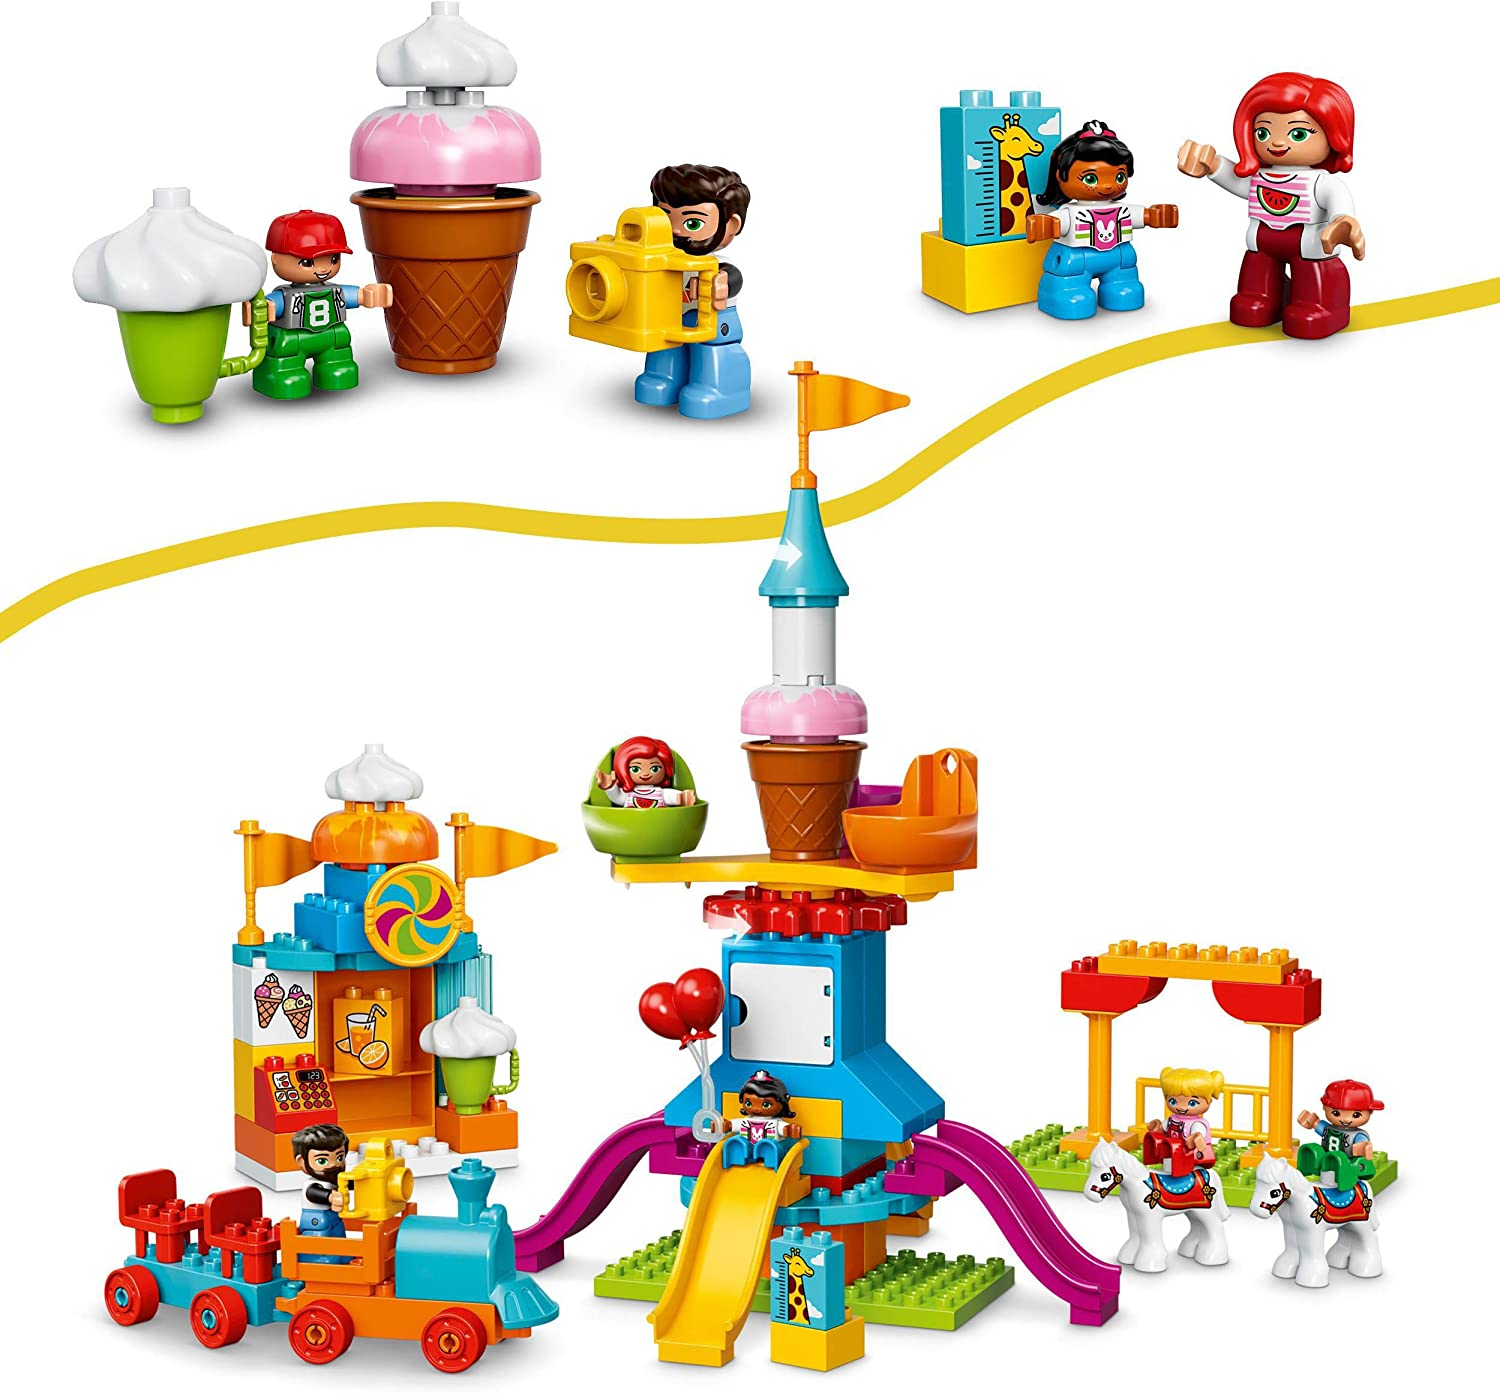 LEGO DUPLO Town Big Fair 10840 Role Play and Learning Building Blocks Set for Toddlers Including a Ferris Wheel, Carousel, and Amusement Park (106 pieces): Toys & Games